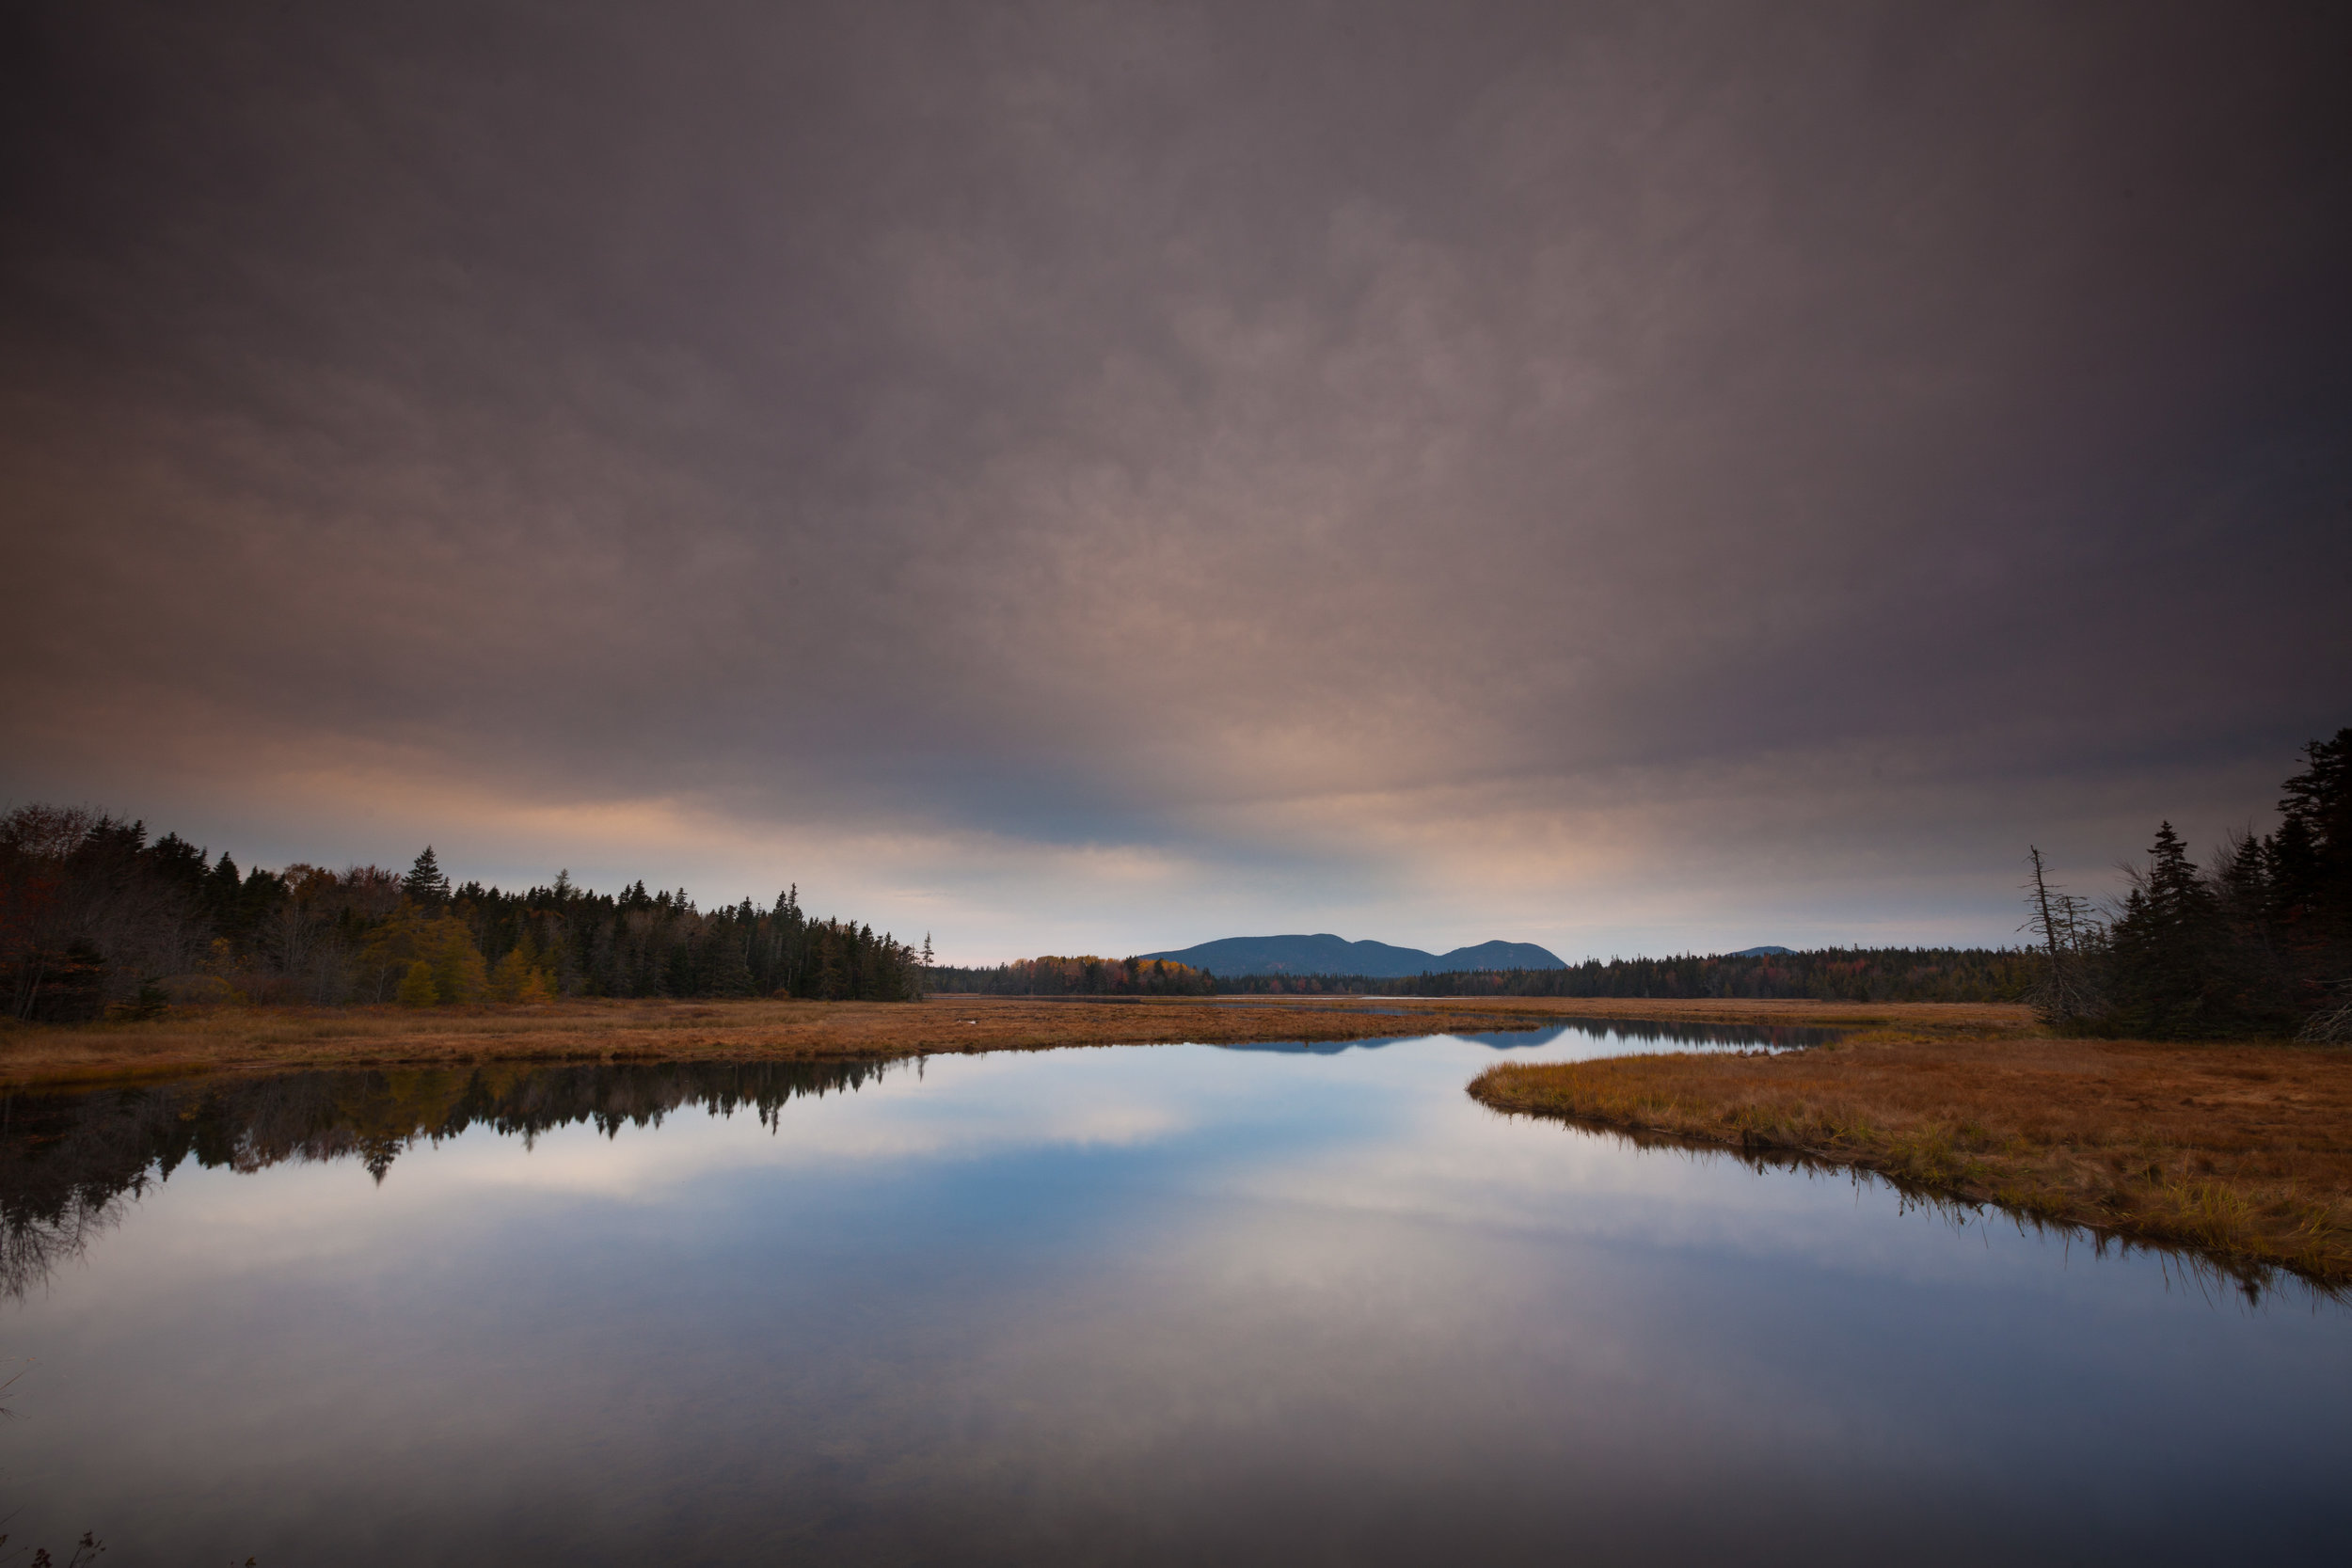 Bass Harbor Marsh and the view towards Bernard Mountain and Mans